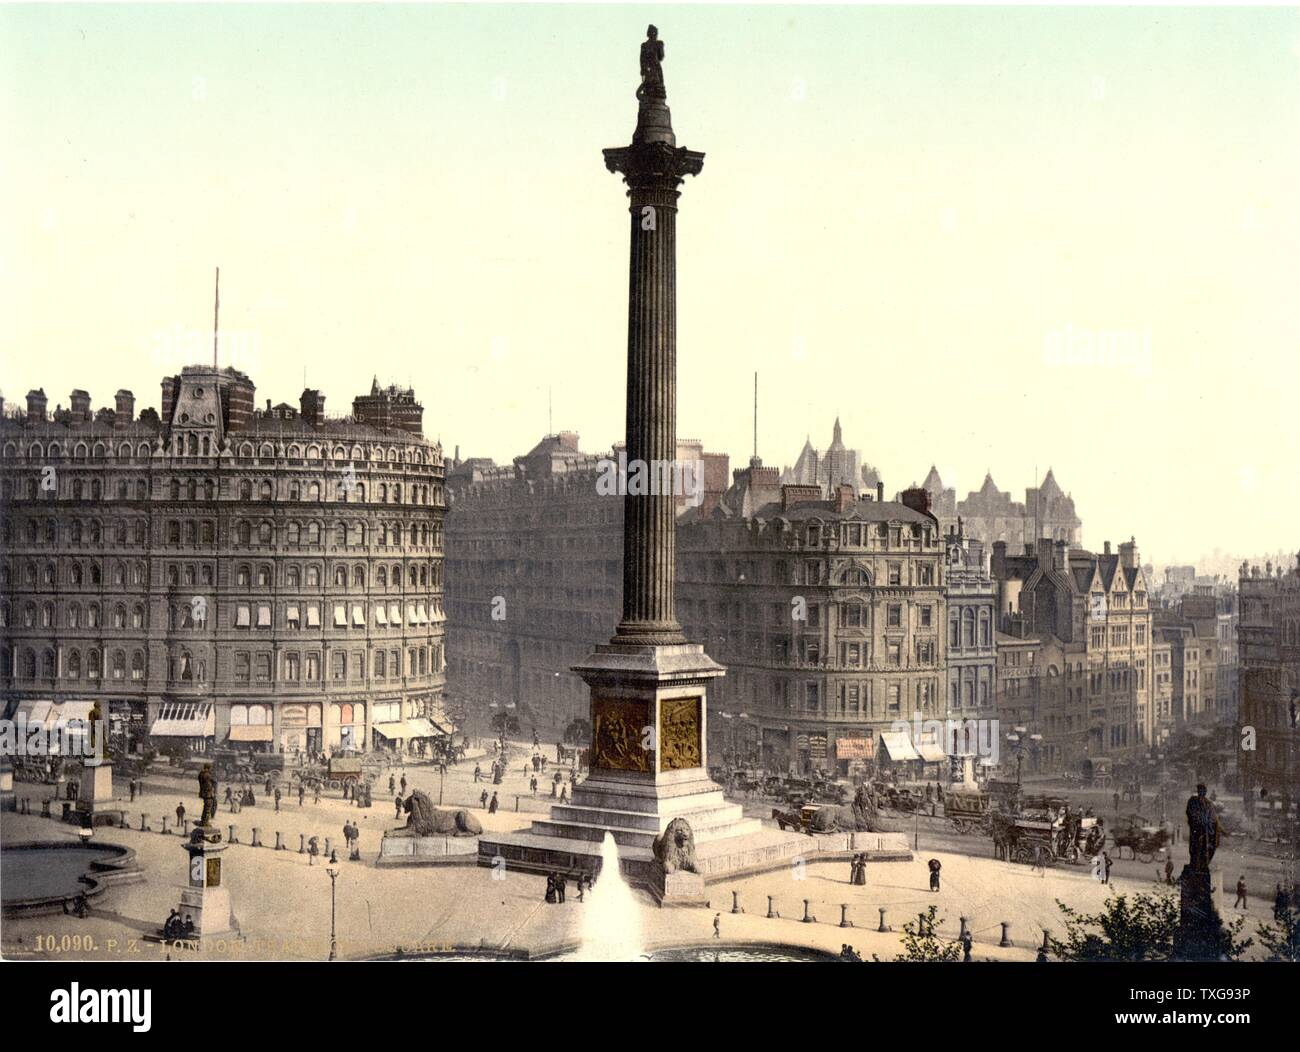 Trafalgar Square viewed from the National Gallery, LondoN Nelson's  Column in the centre with Edwin Landseer's lions guarding the plinth - Stock Image